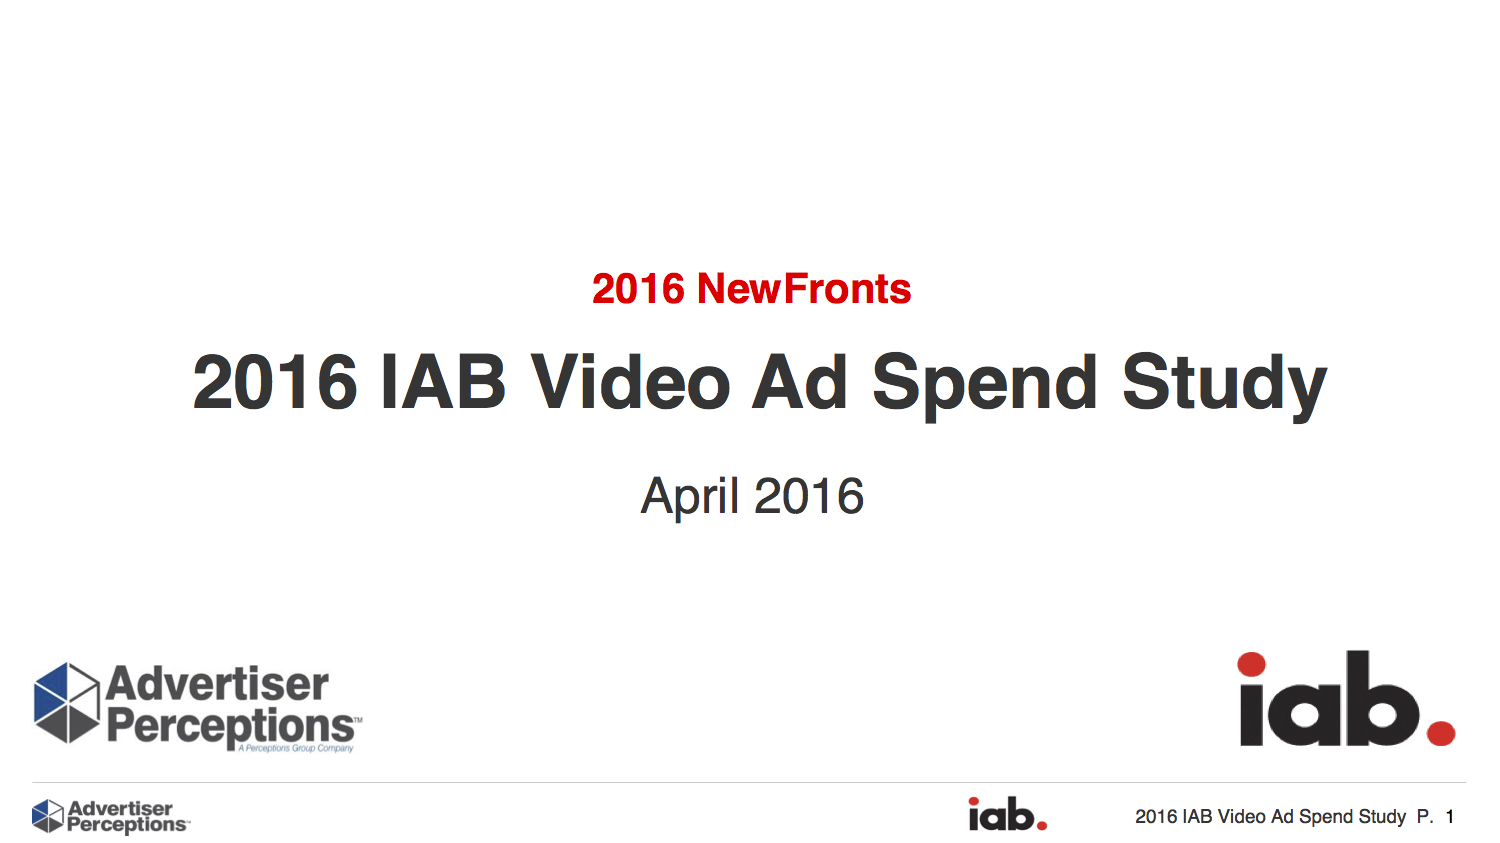 2016 IAB Video Ad Spend Study